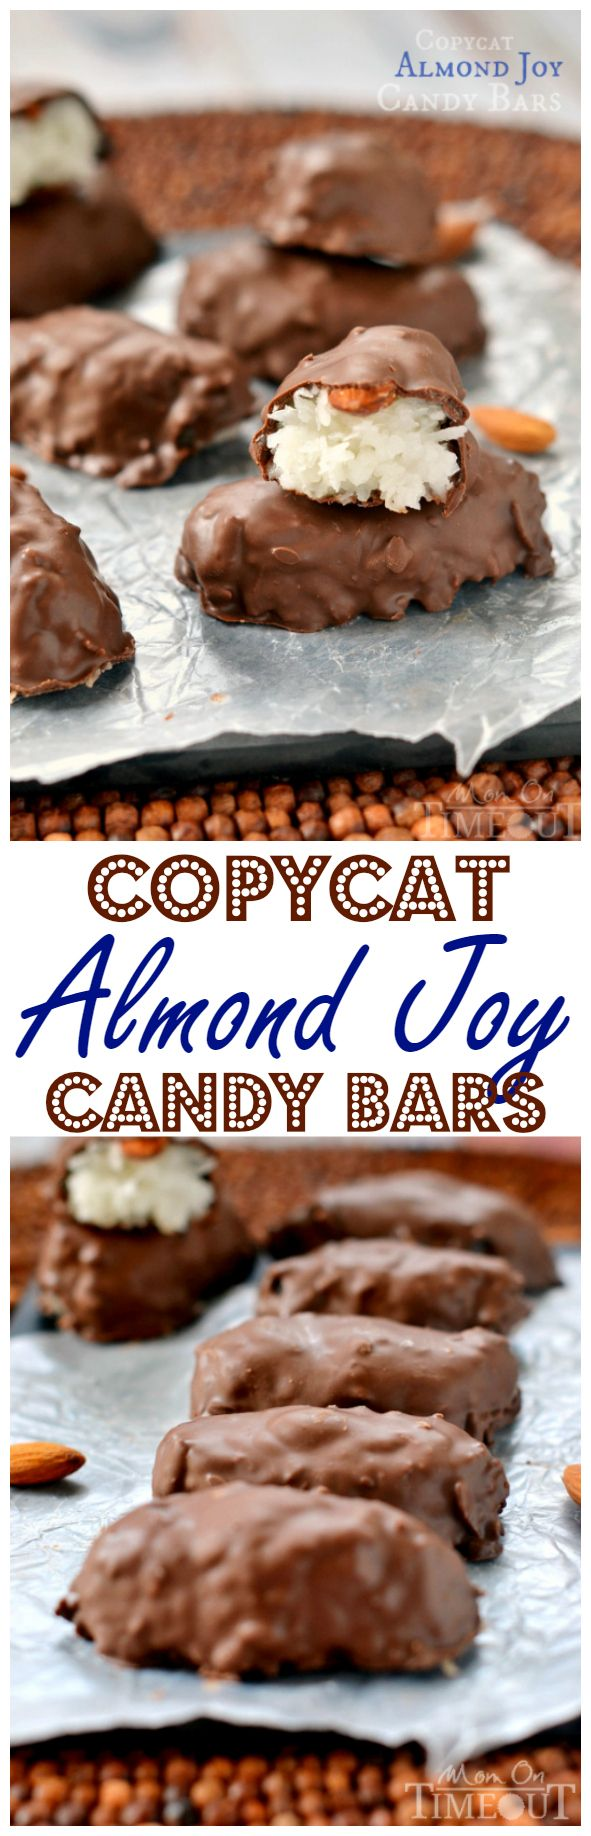 Easily make your own Almond Joy Candy Bars at home! With just a handful of ingredients you can make your own candy bars and trust me, they're SO much better than store-bought! The perfect treat for coconut lovers!| MomOnTimeout.com